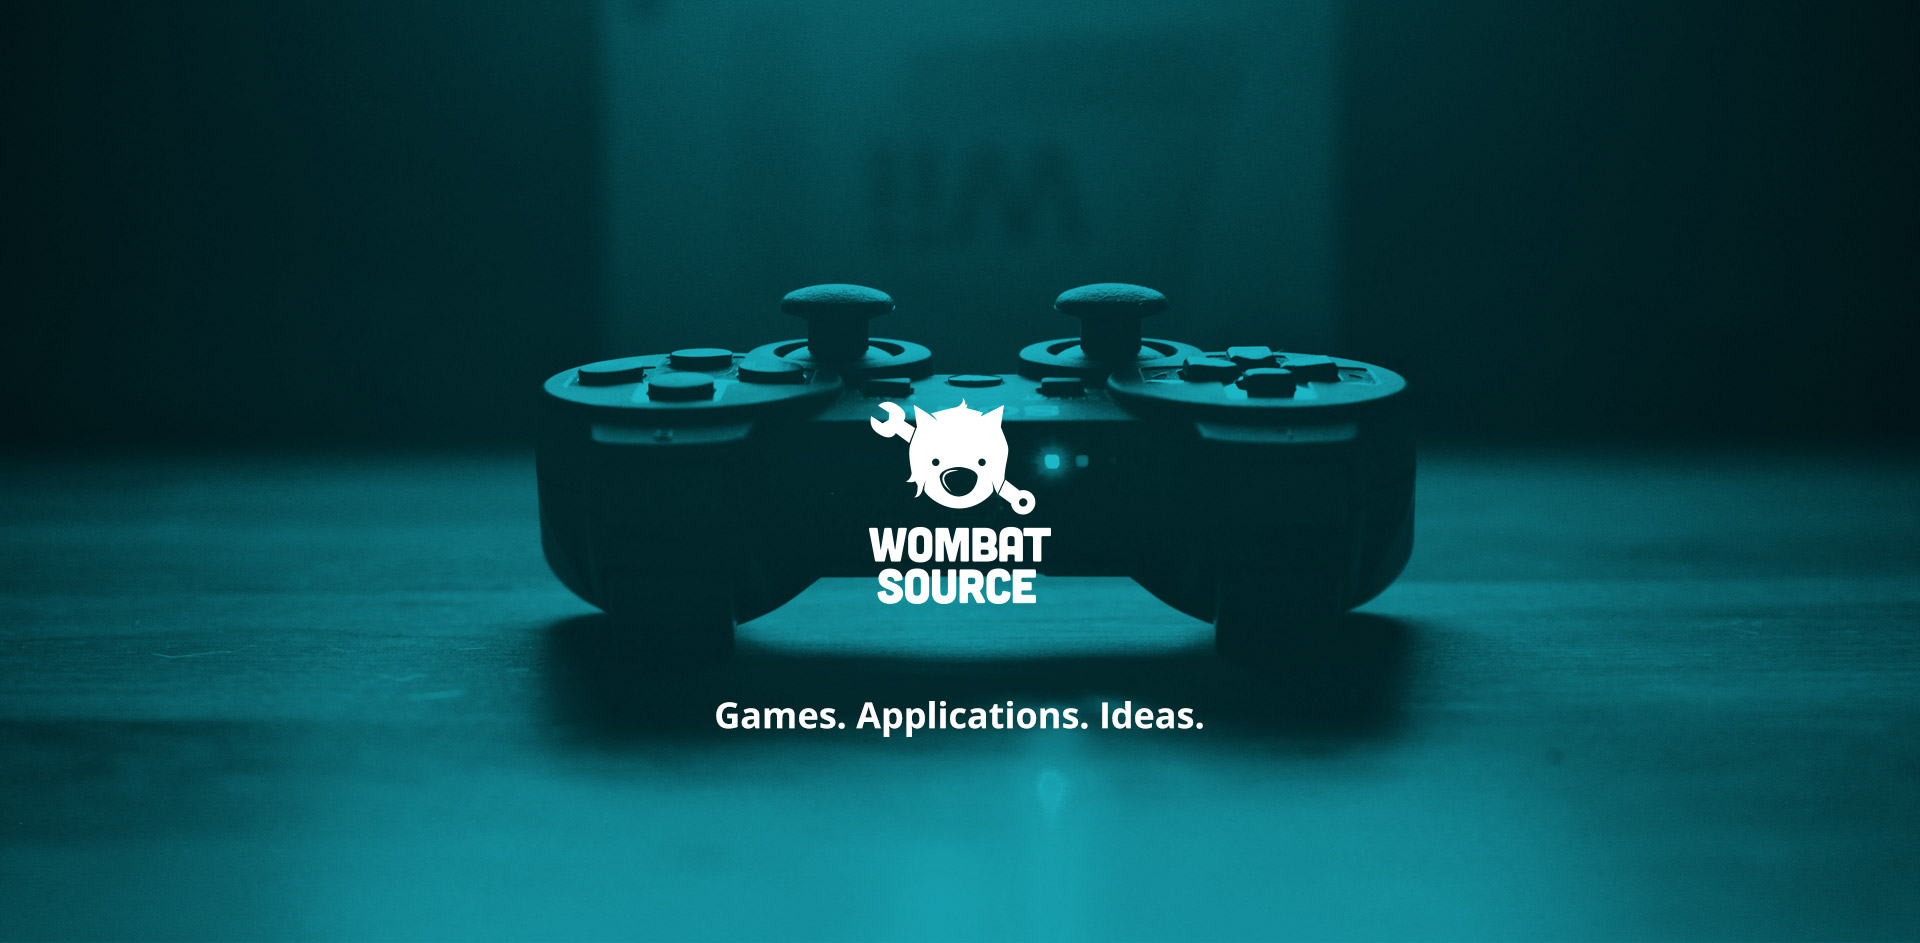 Wombat Source - Games. Applications. Ideas.